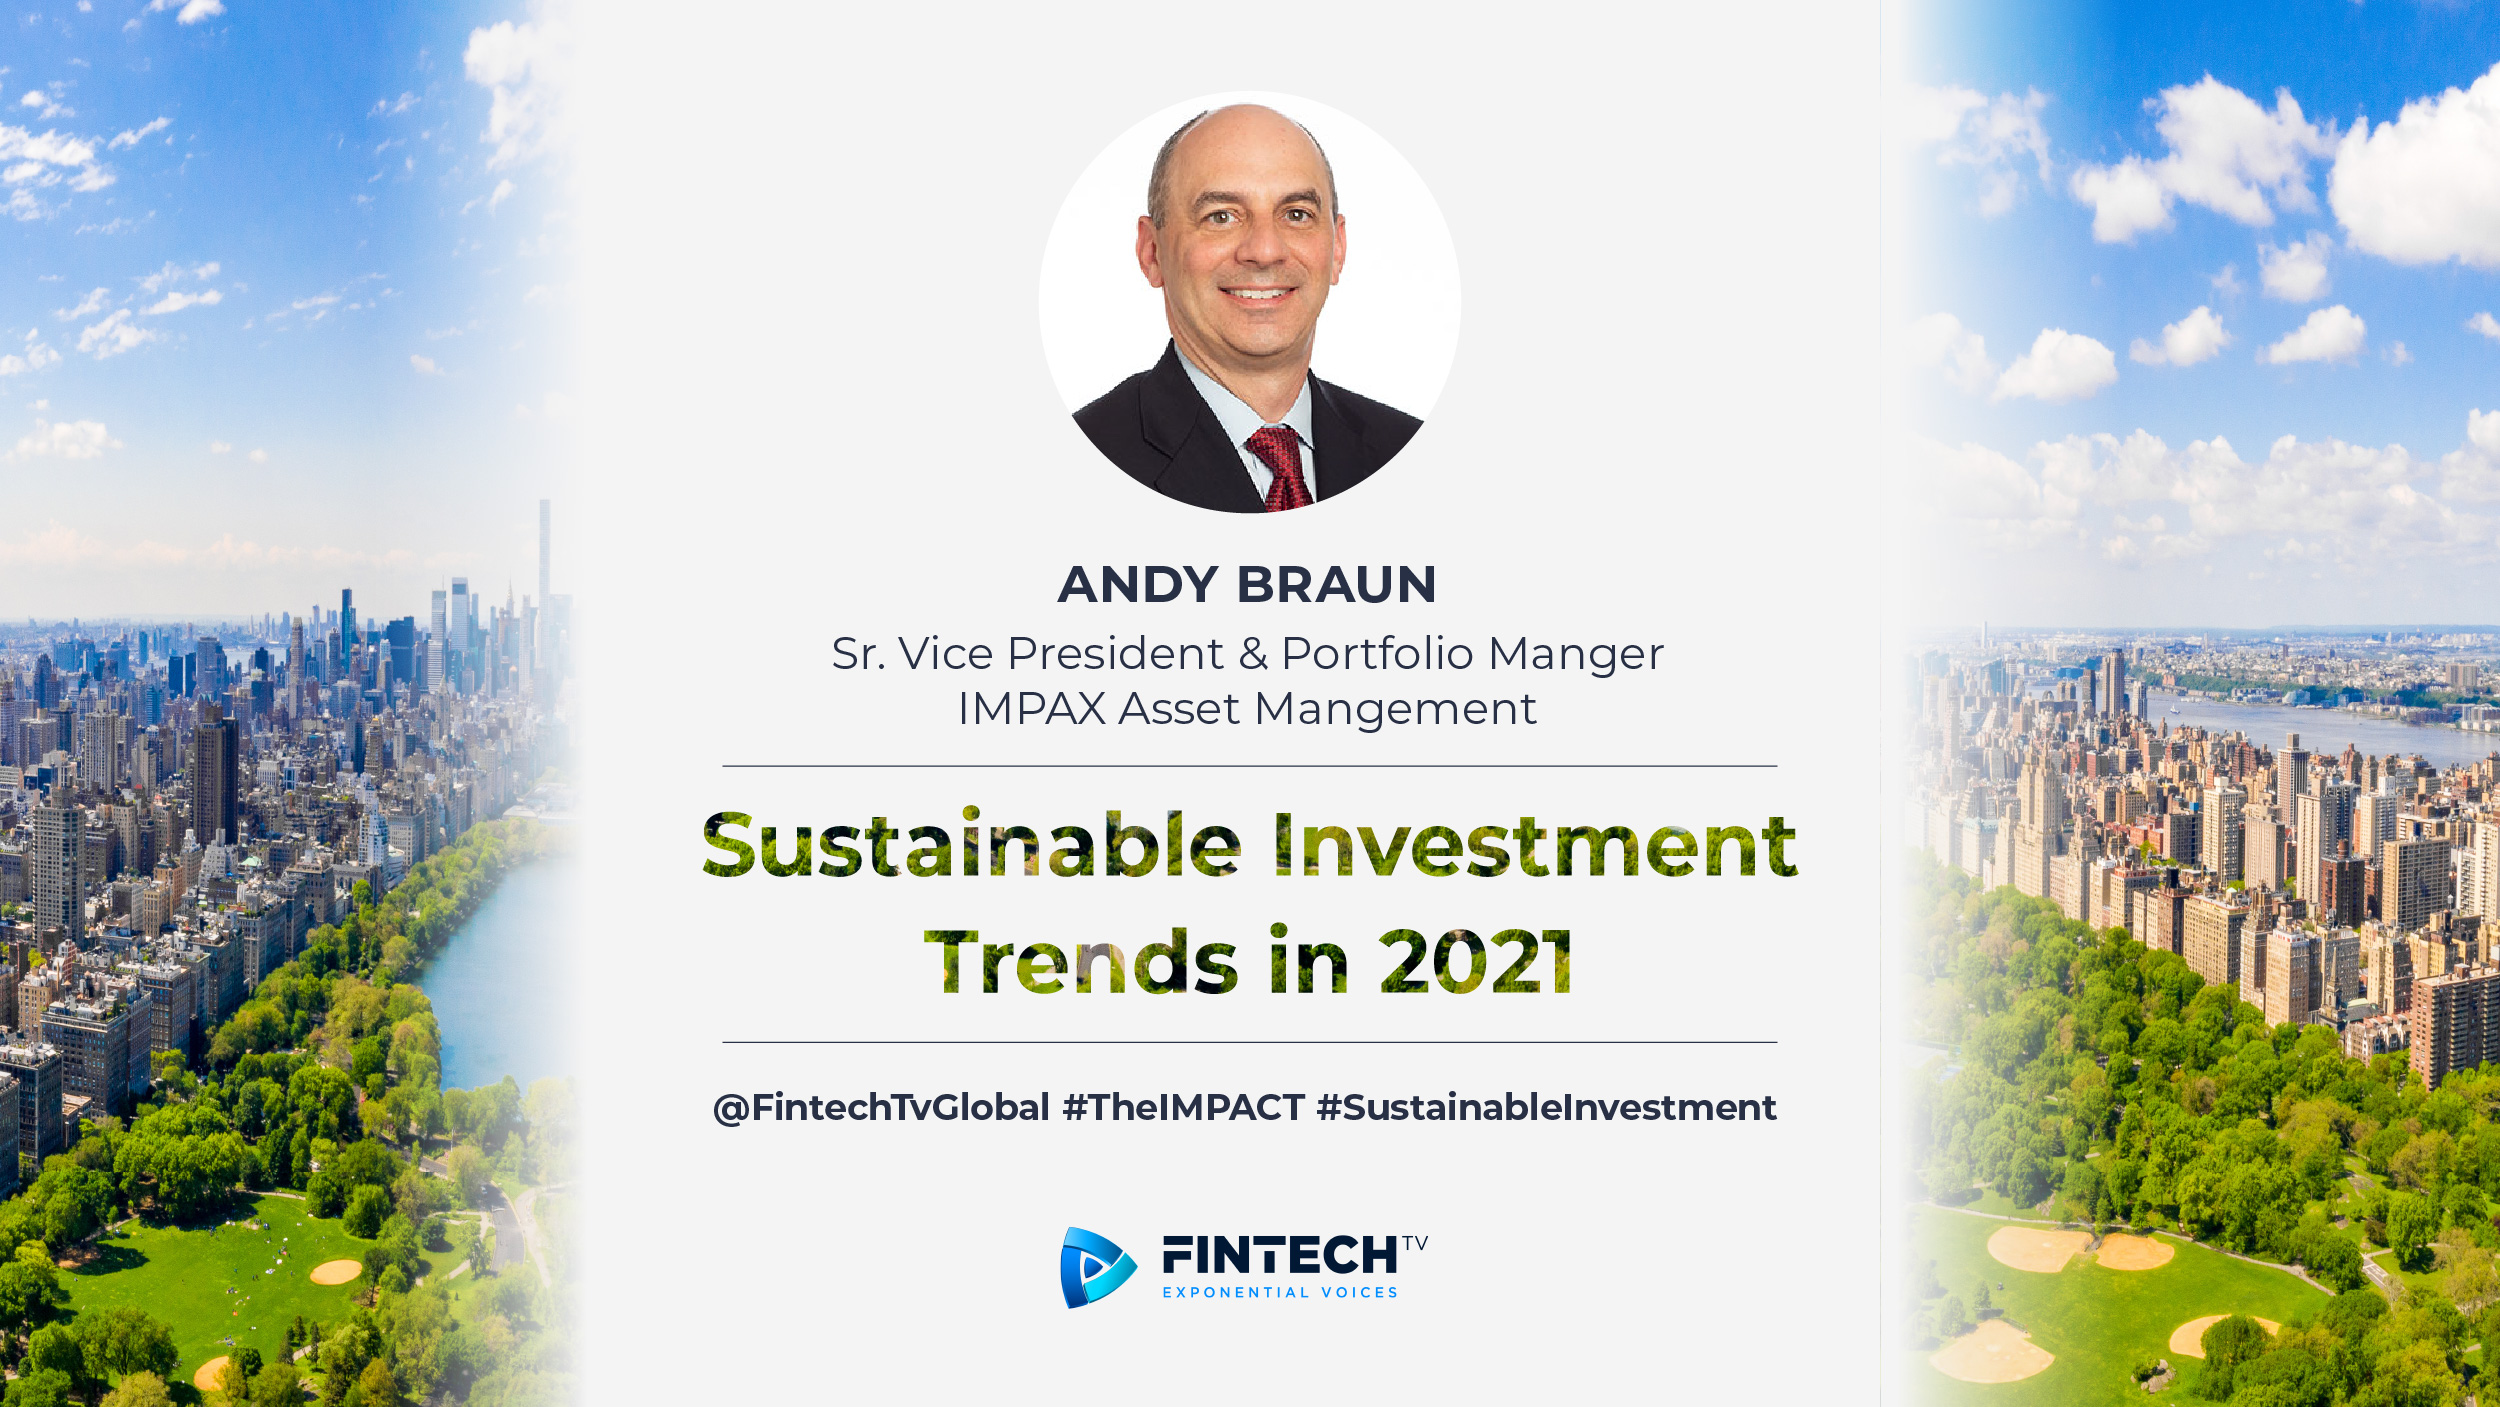 Andy Braun - Senior Vice President - IMPAX Asset Management